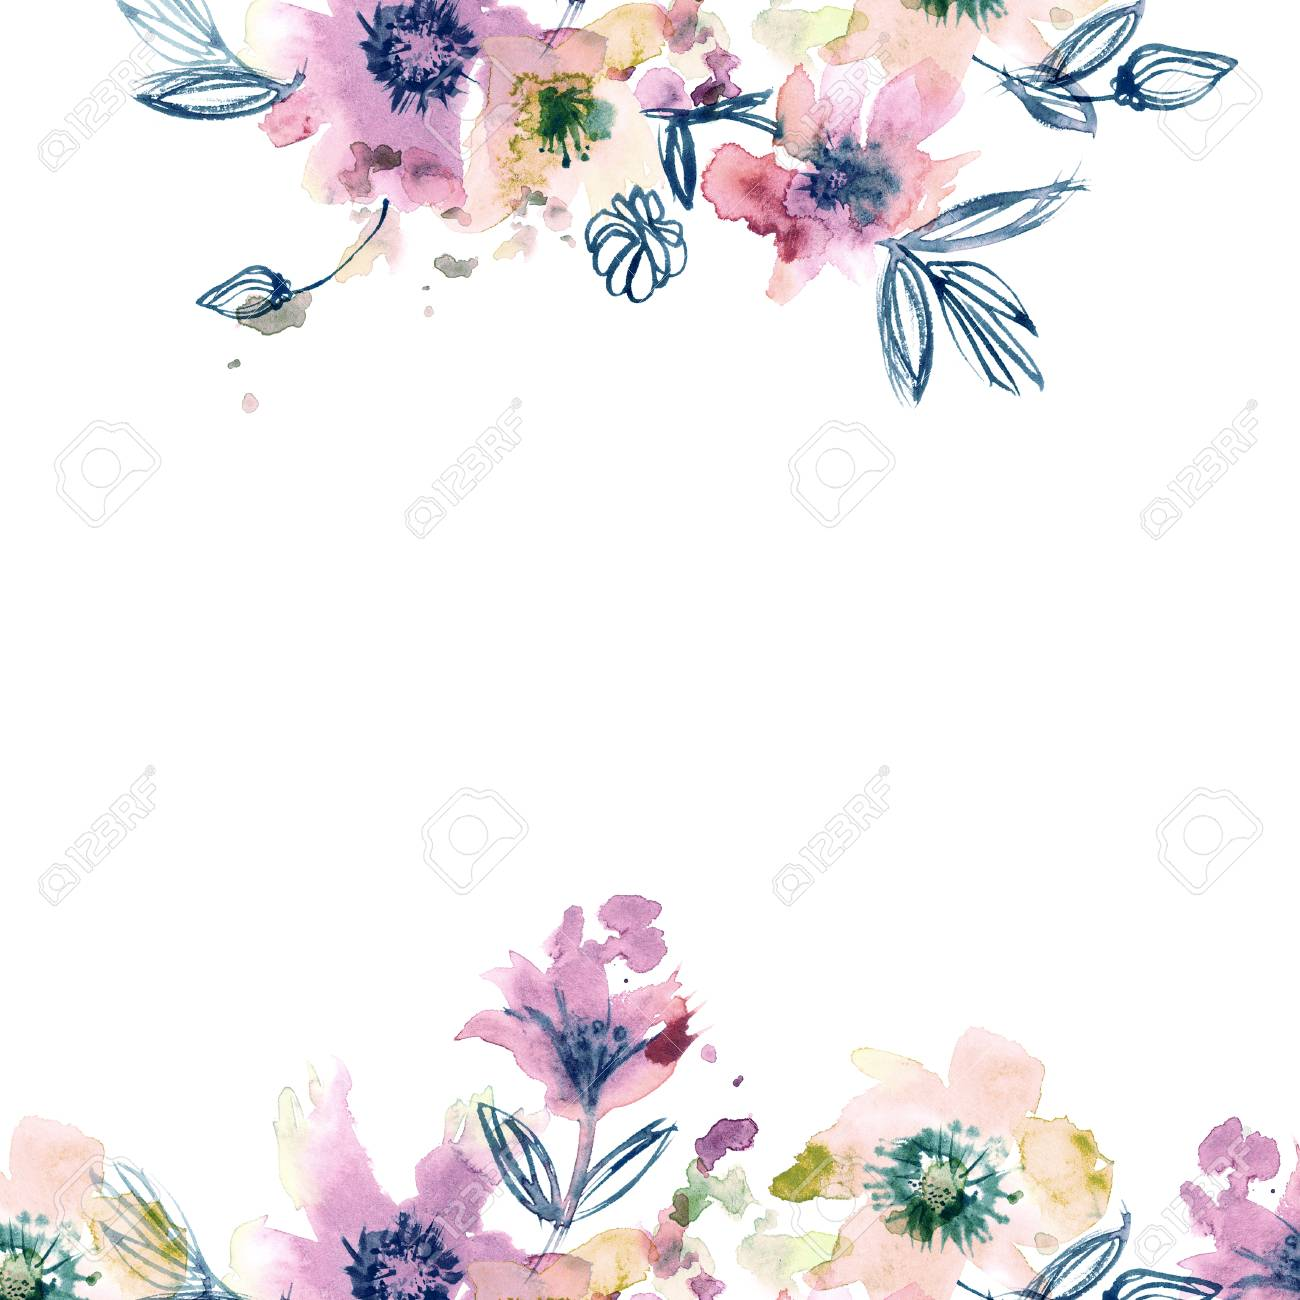 Watercolor Hand Painted Abstract Spring Flowers On A White Background